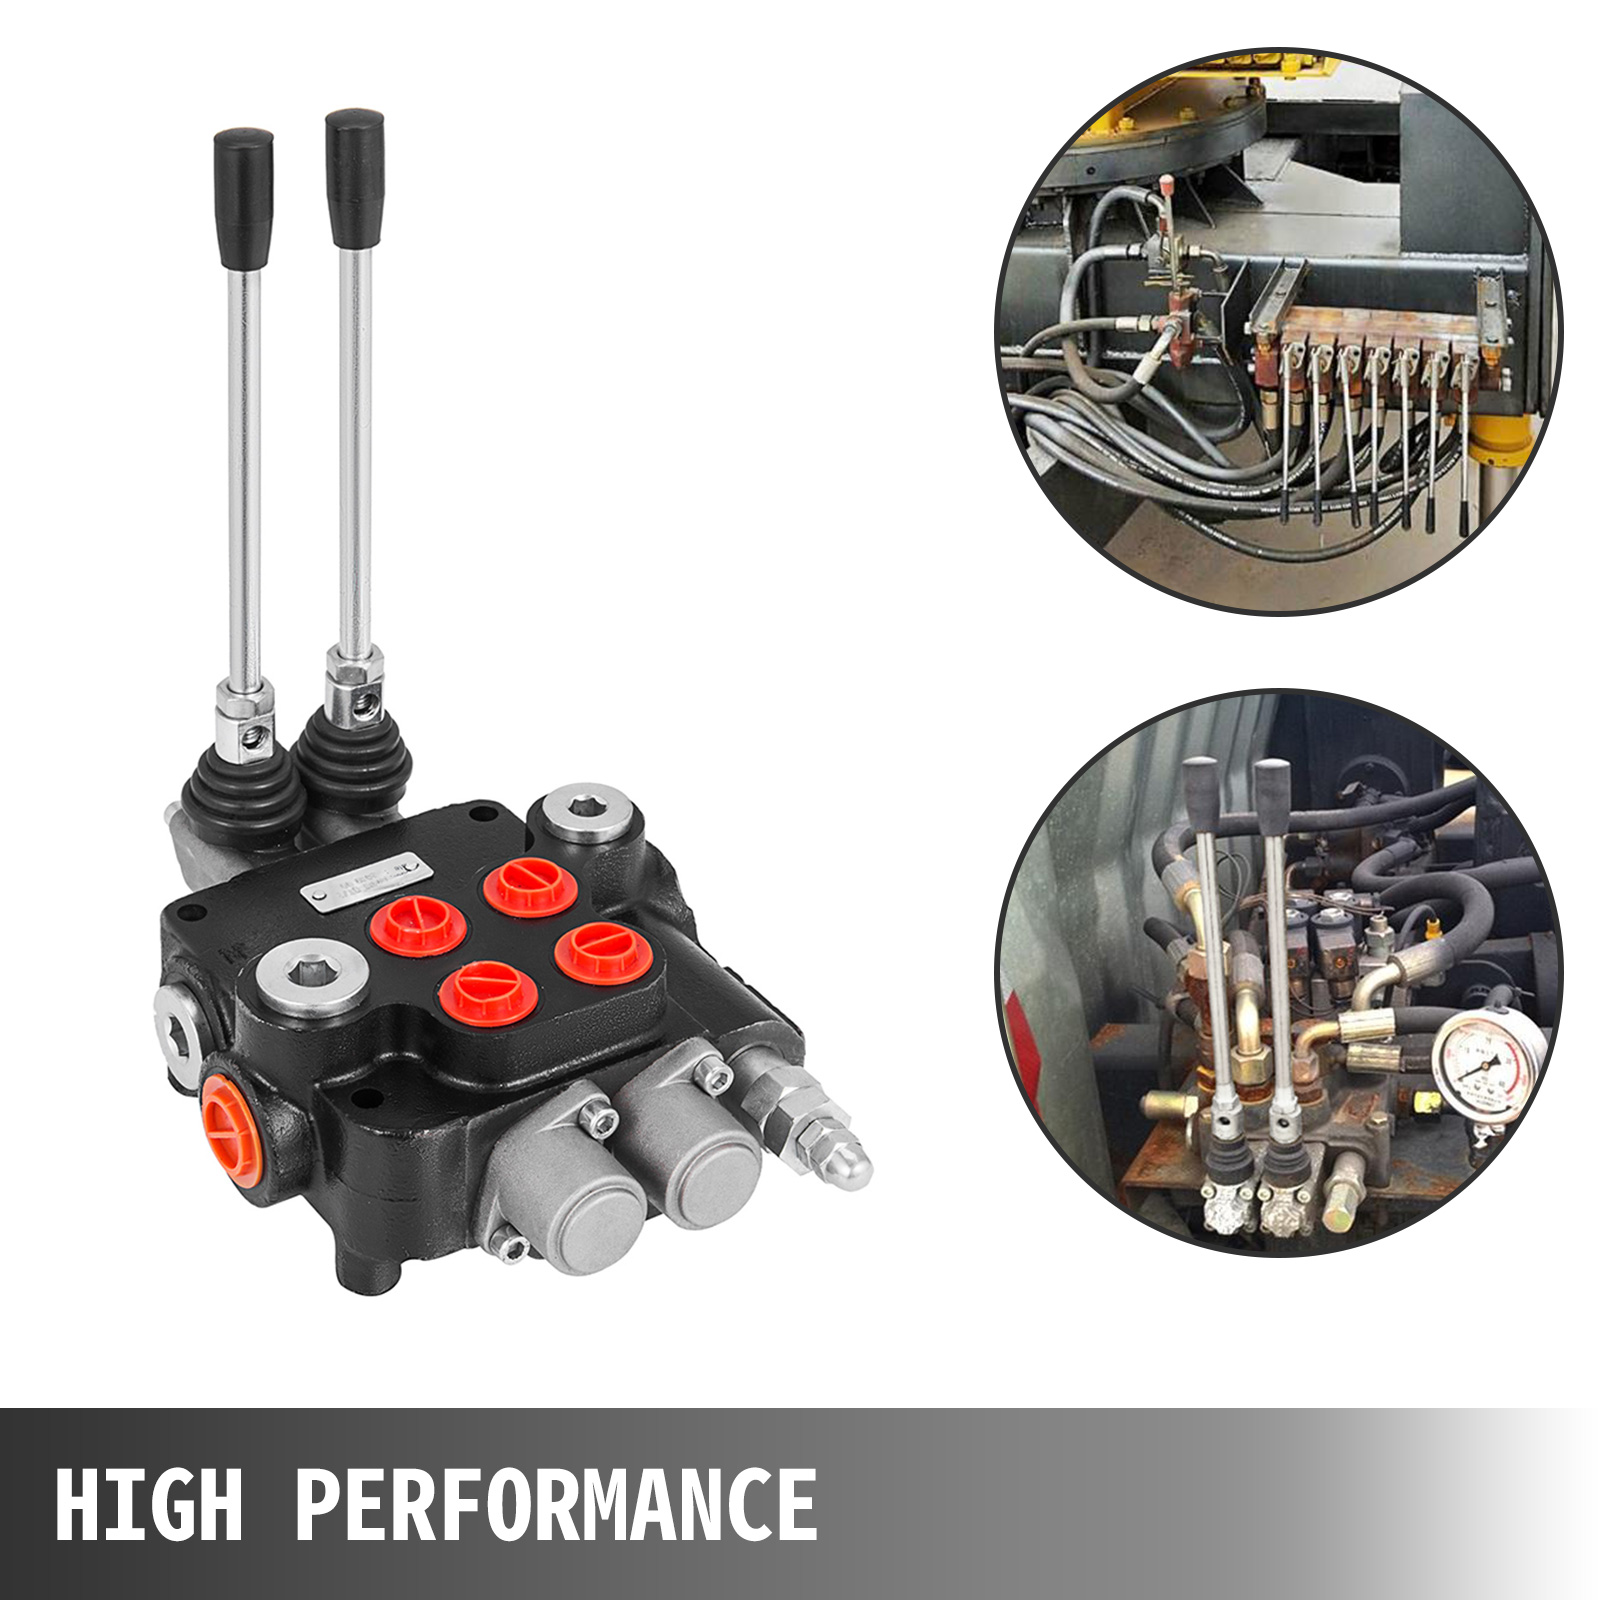 2-Spool-Hydraulic-Control-Valve-21GPM-Double-Acting-Monoblock-Log-Small-Tractors thumbnail 3